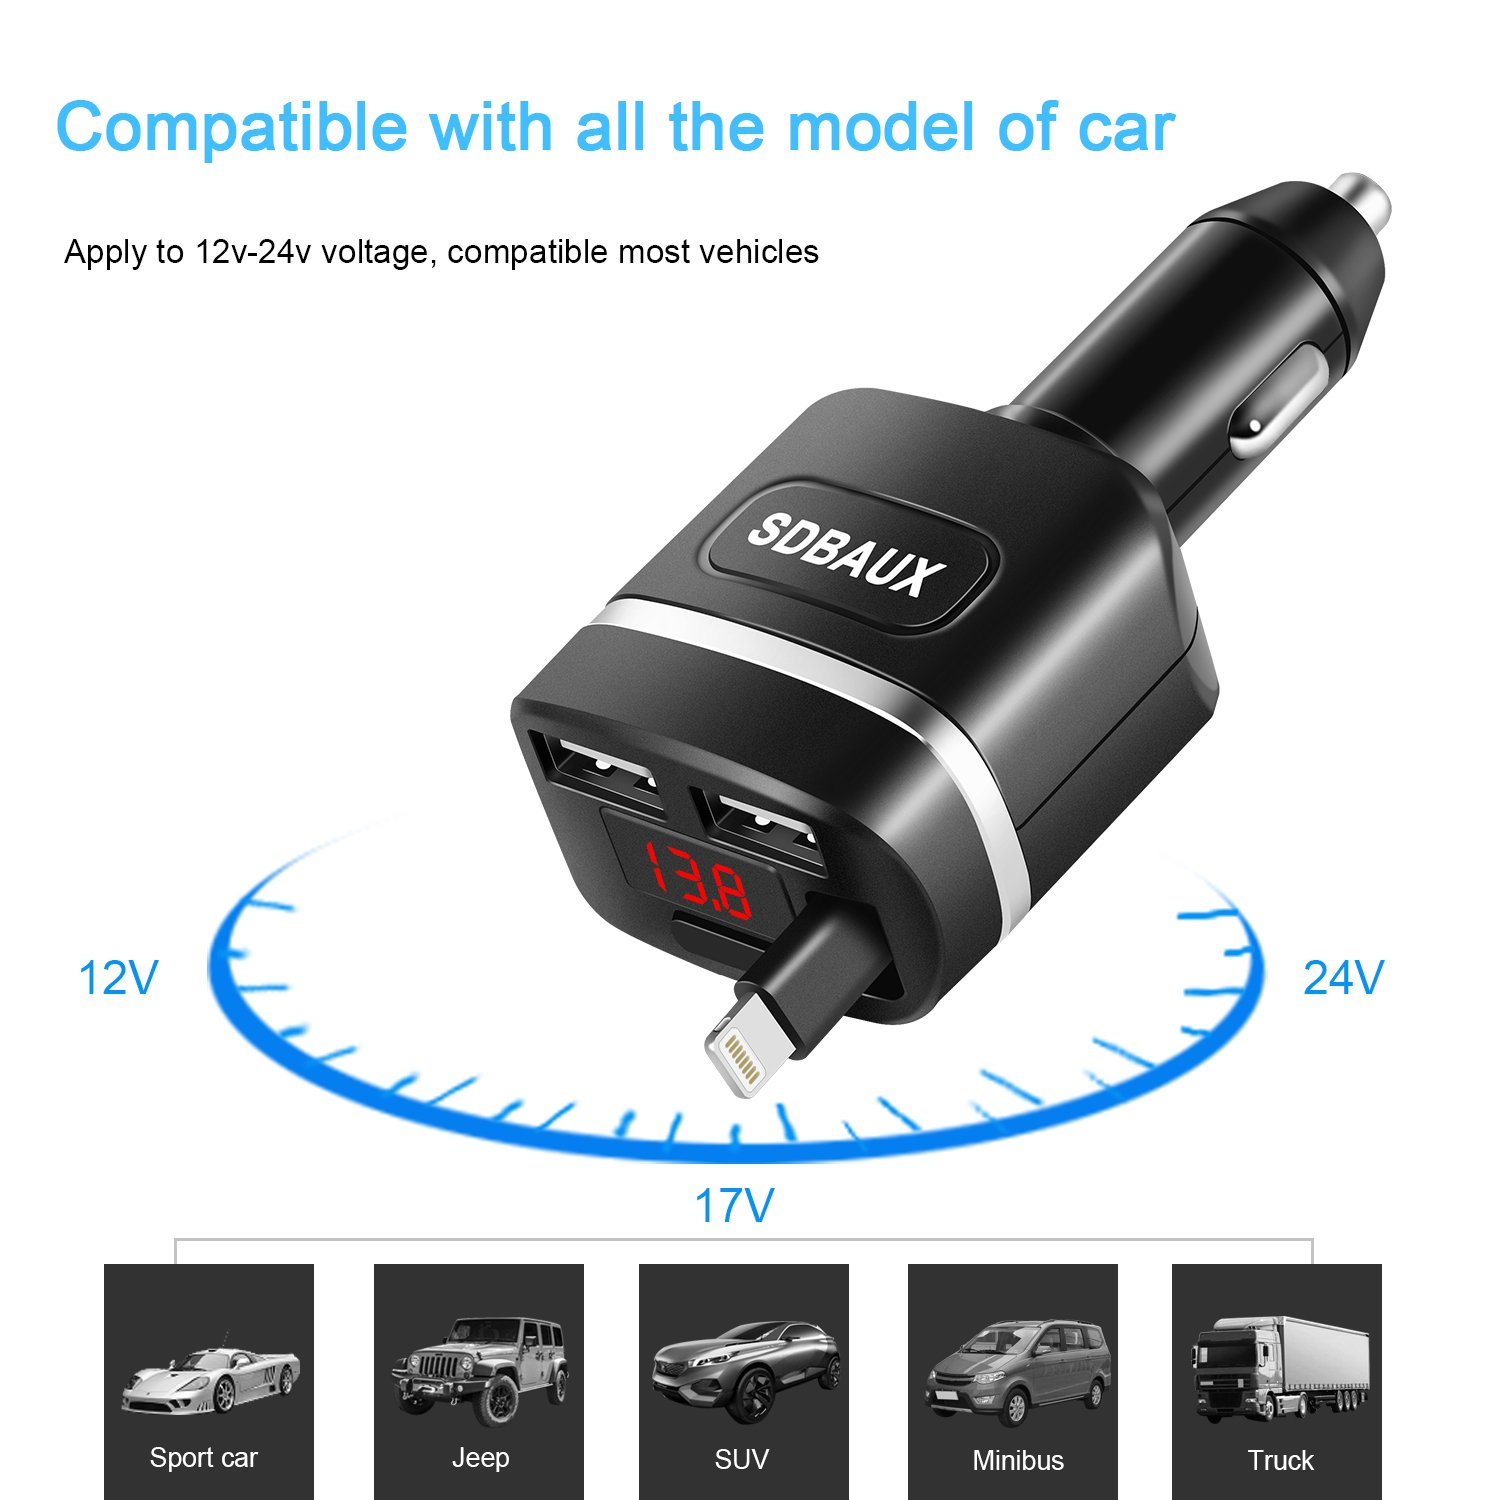 Black SIQIWO Car Charger,Quick Charge 4.8A//24W with 2.8ft Retractable Cable Compatible//Replacement for iPad iPhone Xs Max XR X 8 7 6 5S Plus iPod,2 USB Ports for Samsung Galaxy LG and More